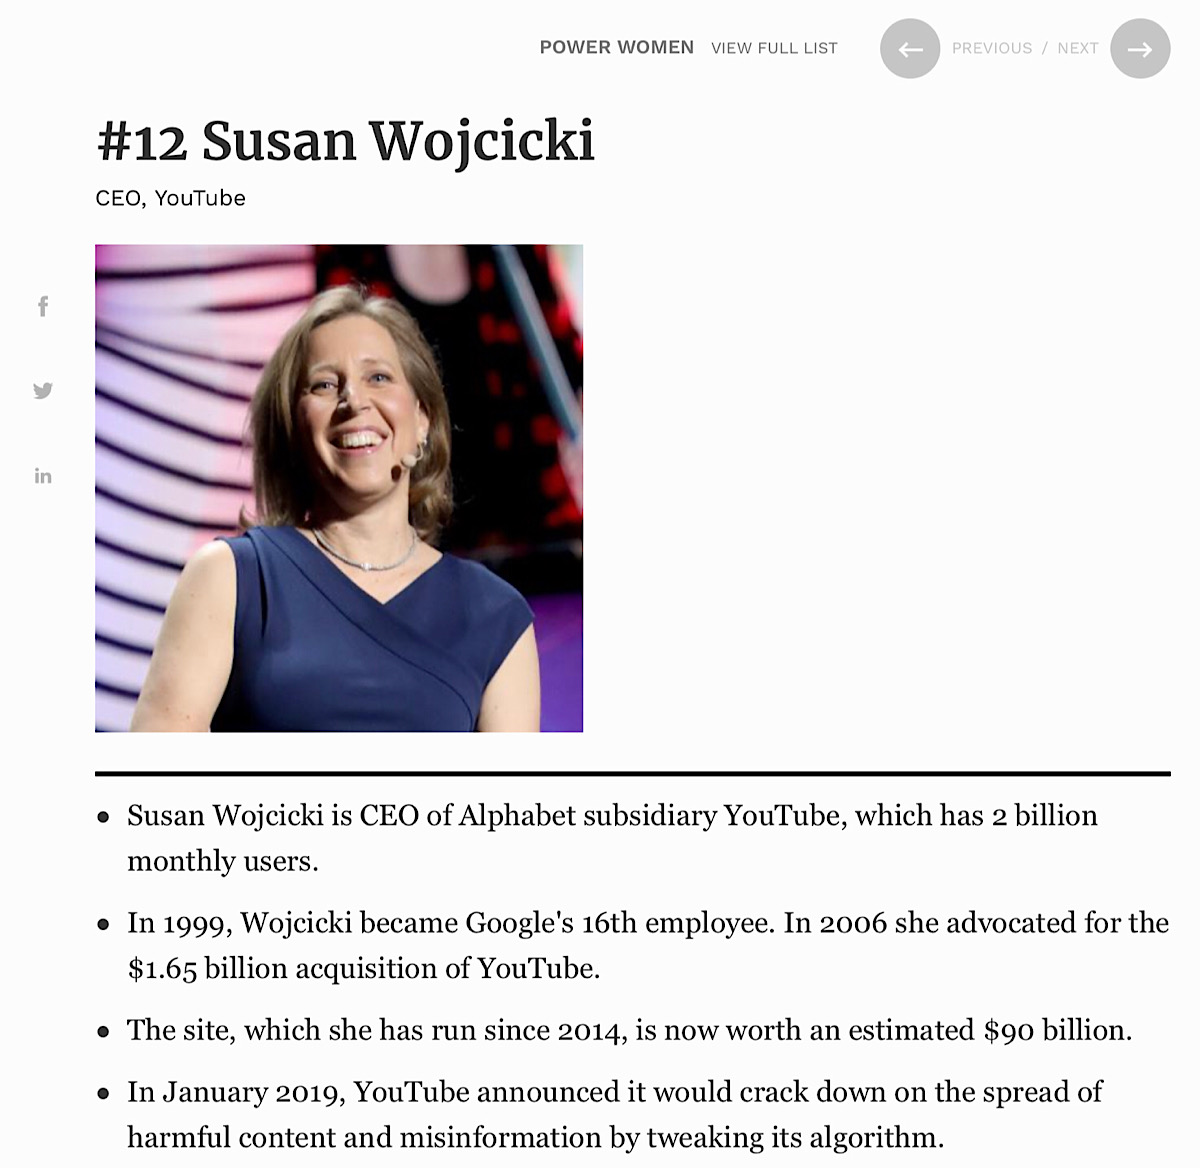 YouTube CEO Susan Wojcicki's at number 12 on the Forbes World's Most Powerful Women of 2019 list